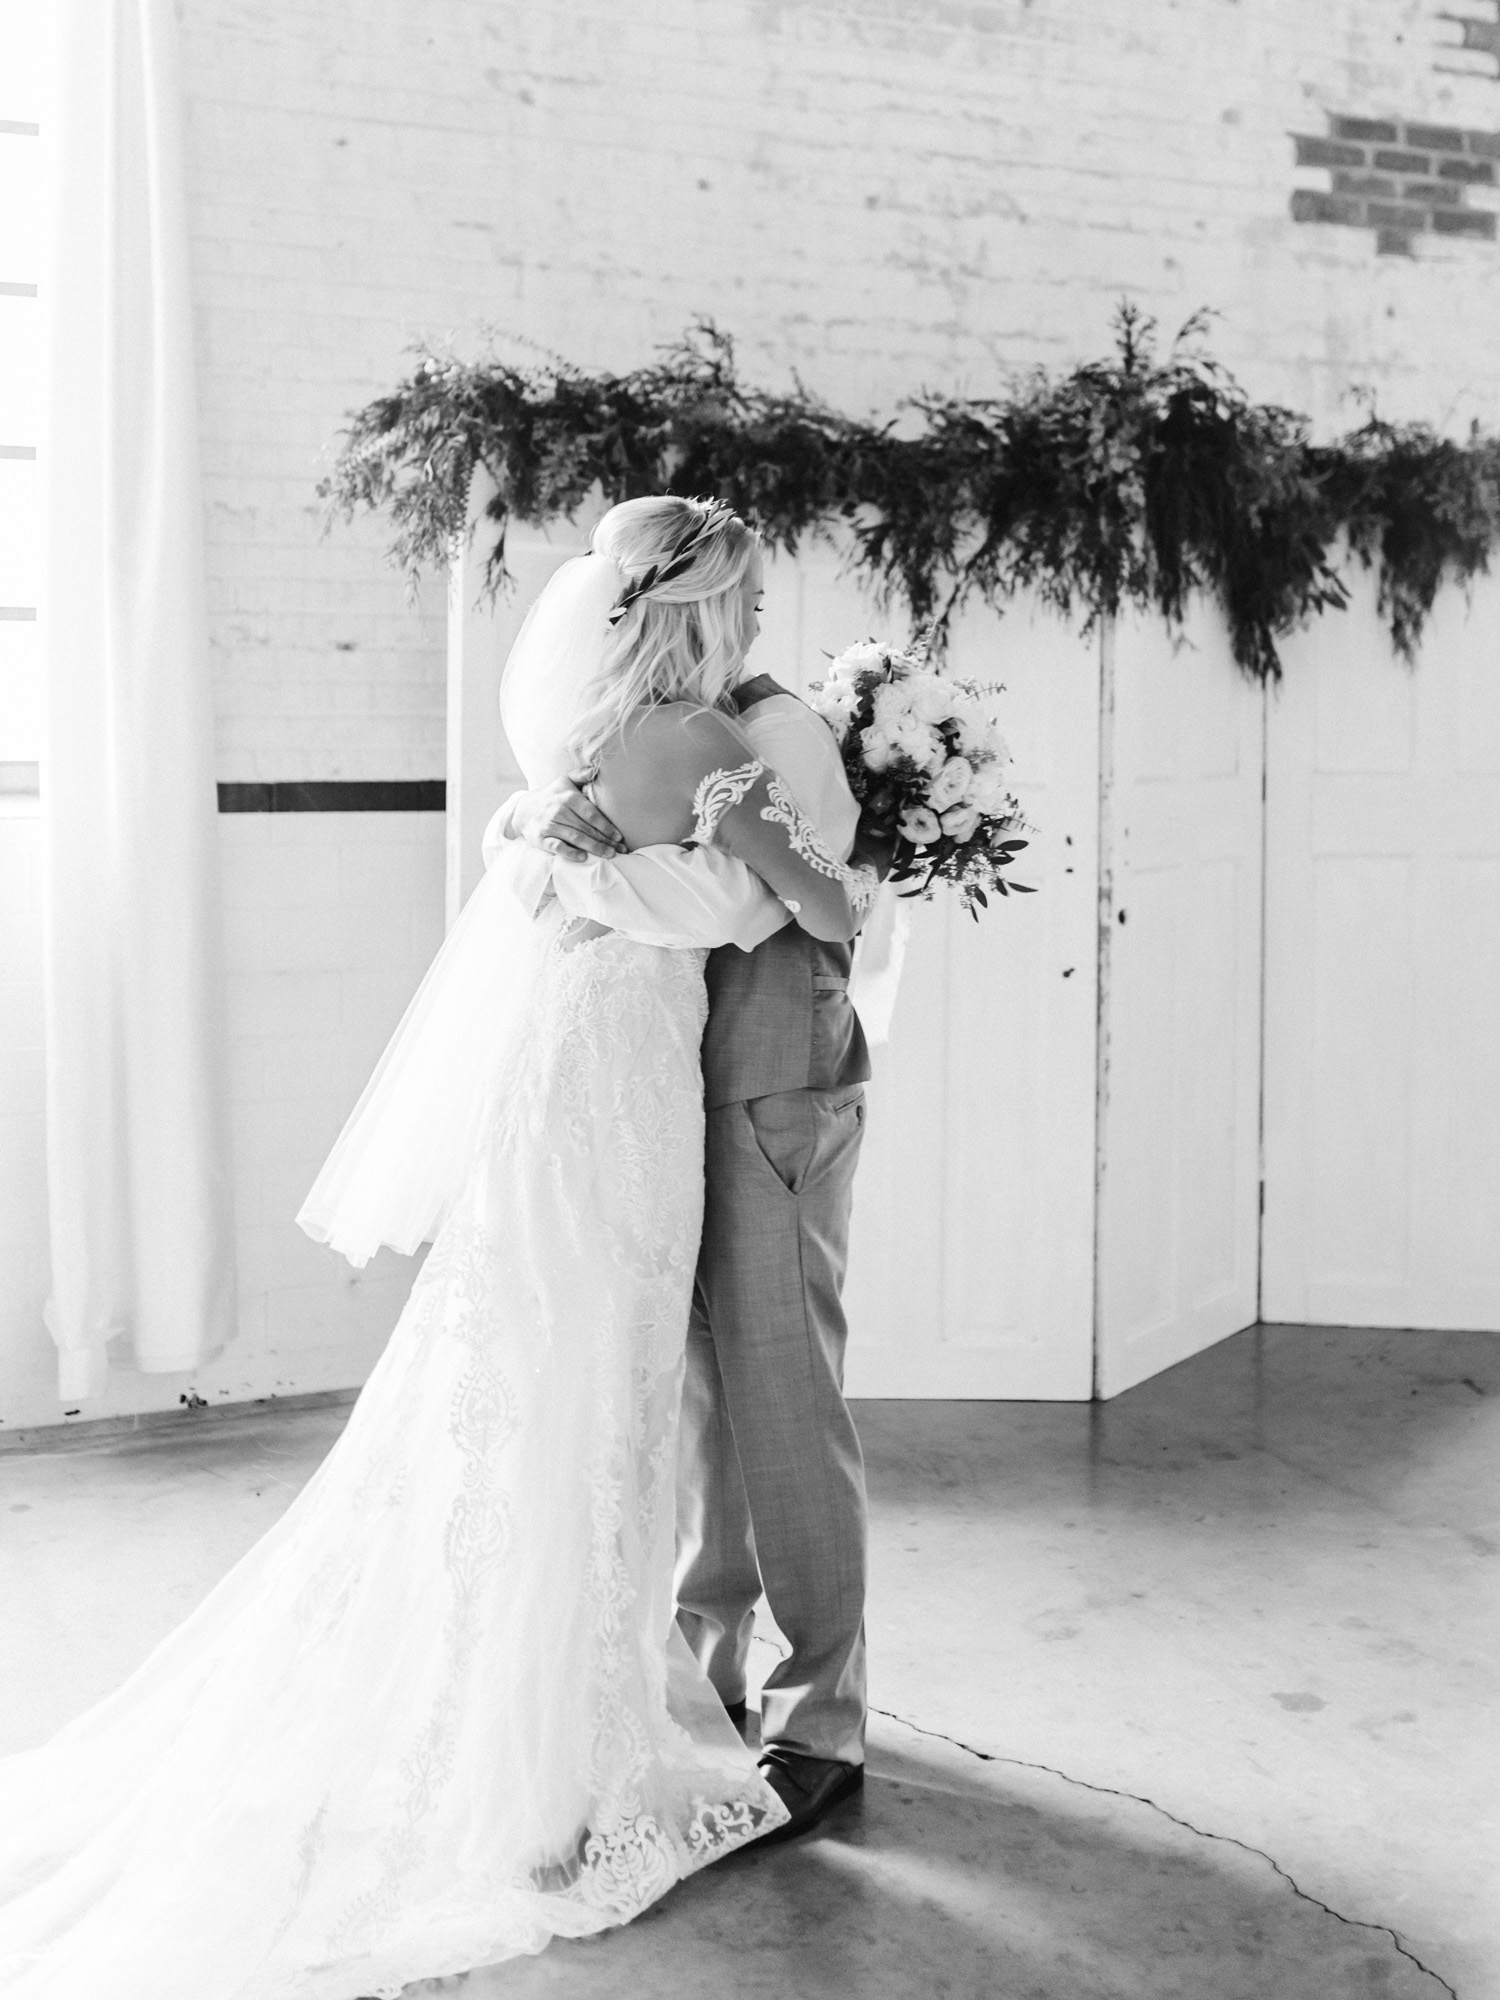 A bride and groom hug while seeing each other for the first time during their first look at their wedding at The Brick